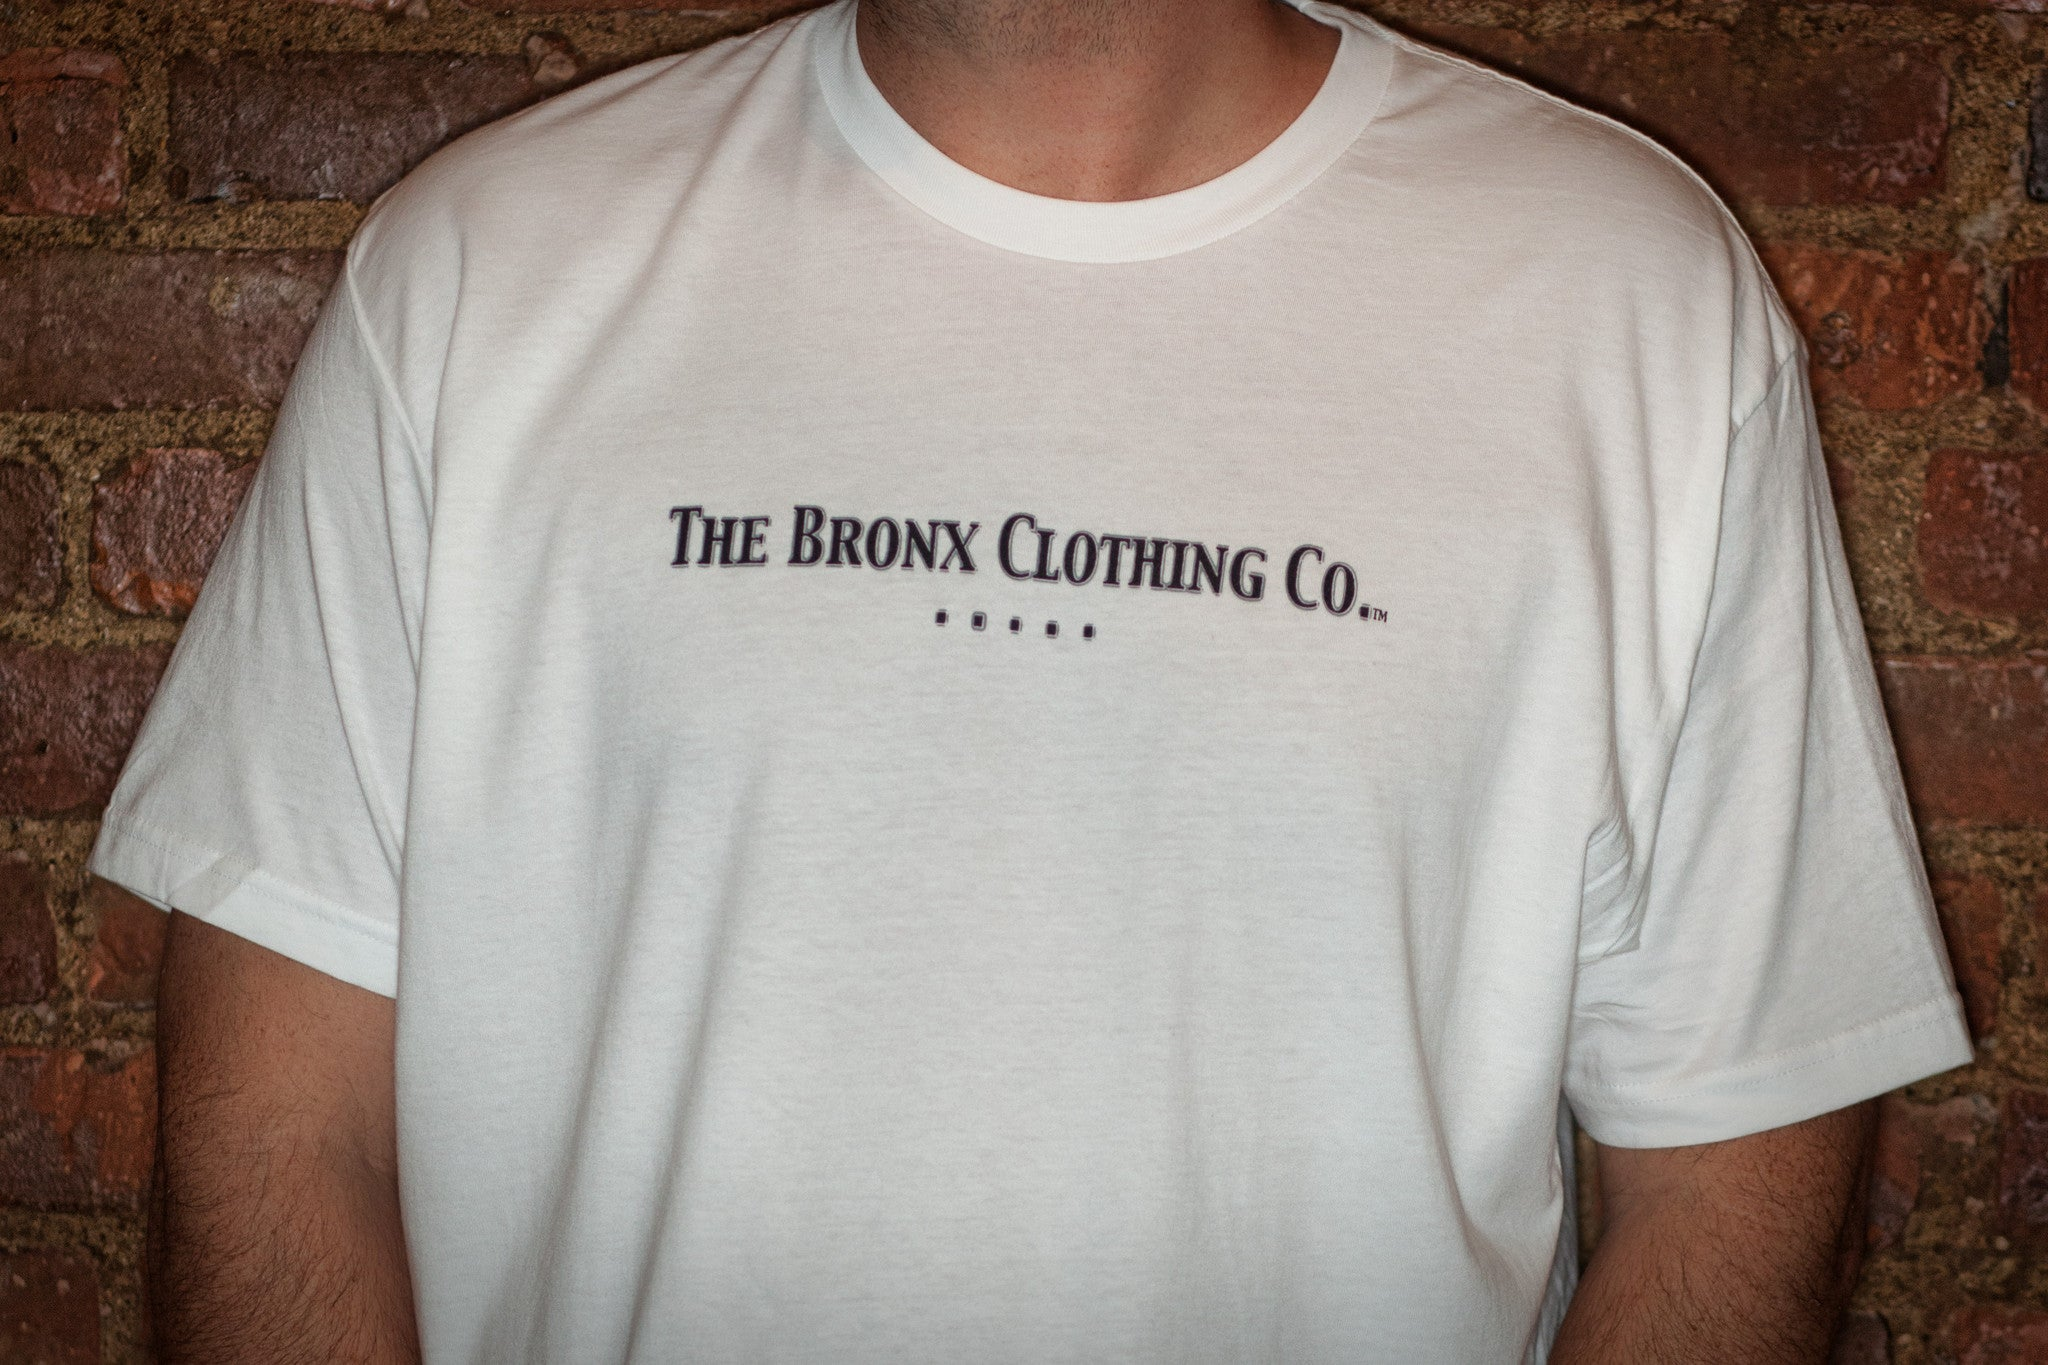 The Bronx Clothing Co. Men's White Tee